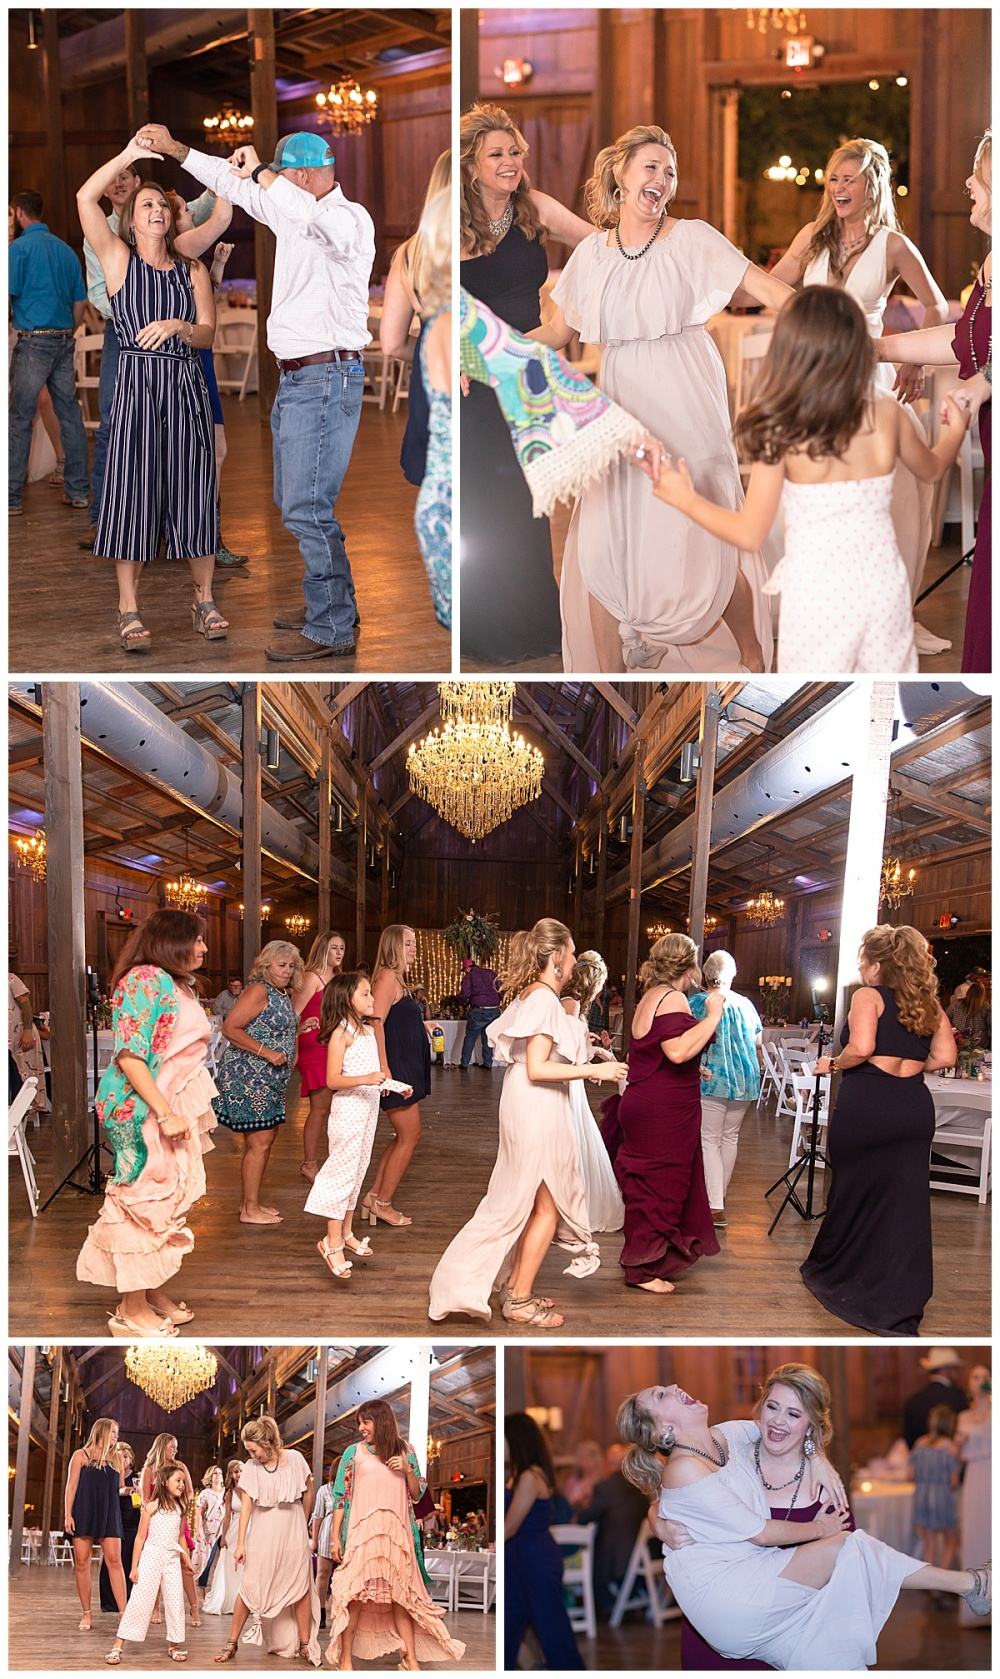 Eagle-Dancer-Ranch-Boerne-Texas-Wedding-Party-Barn-Carly-Barton-Photography_0074.jpg